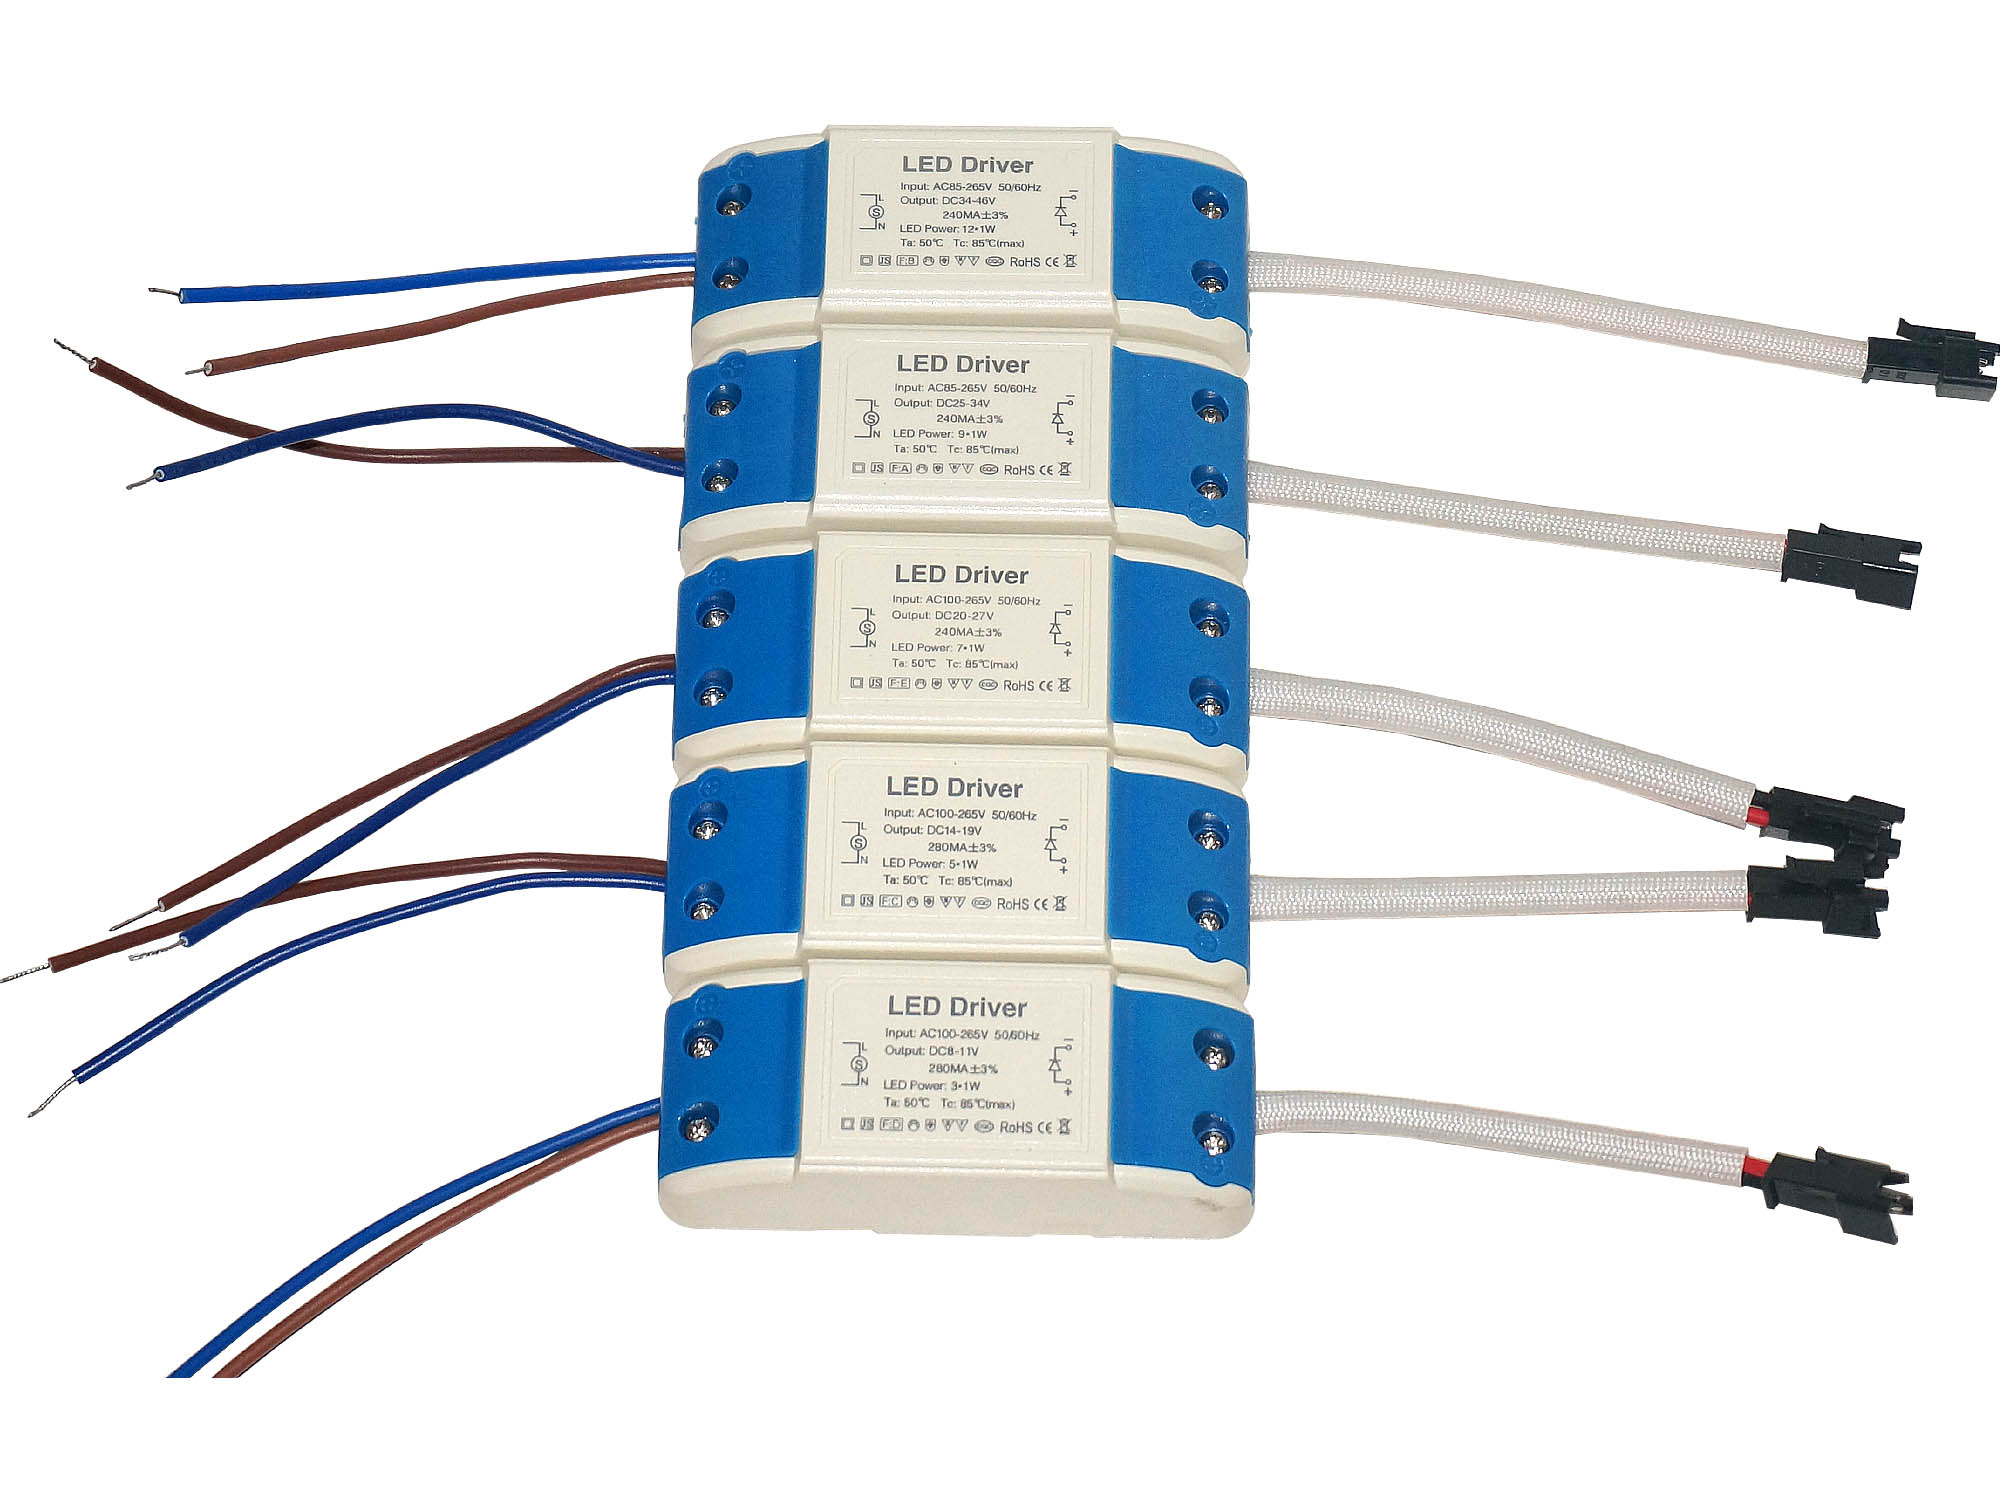 Dc Led Driver Transformer 3w 5w 7w 9w 12w Mr16 Mr11 G4 Constant Power Circuit Due To The Reactive Often Encountered In Lamps Transformers Are Always About 30 40 More Selected Using This